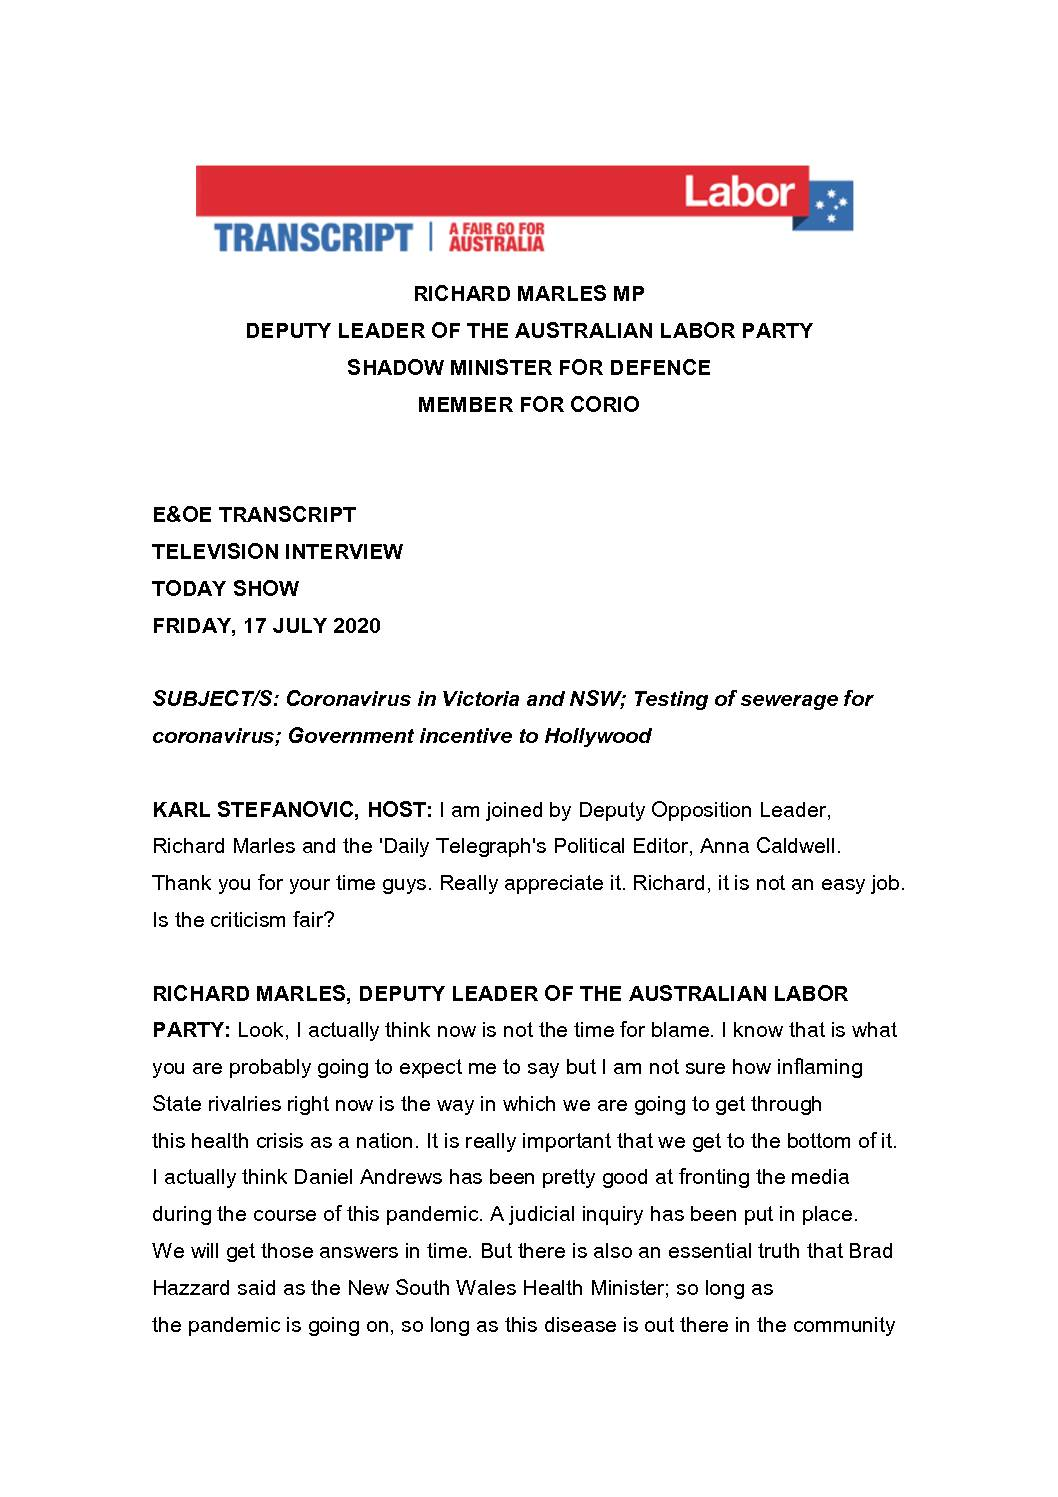 20.07.17-CHANNEL-9-THE-TODAY-SHOW-TRANSCRIPT